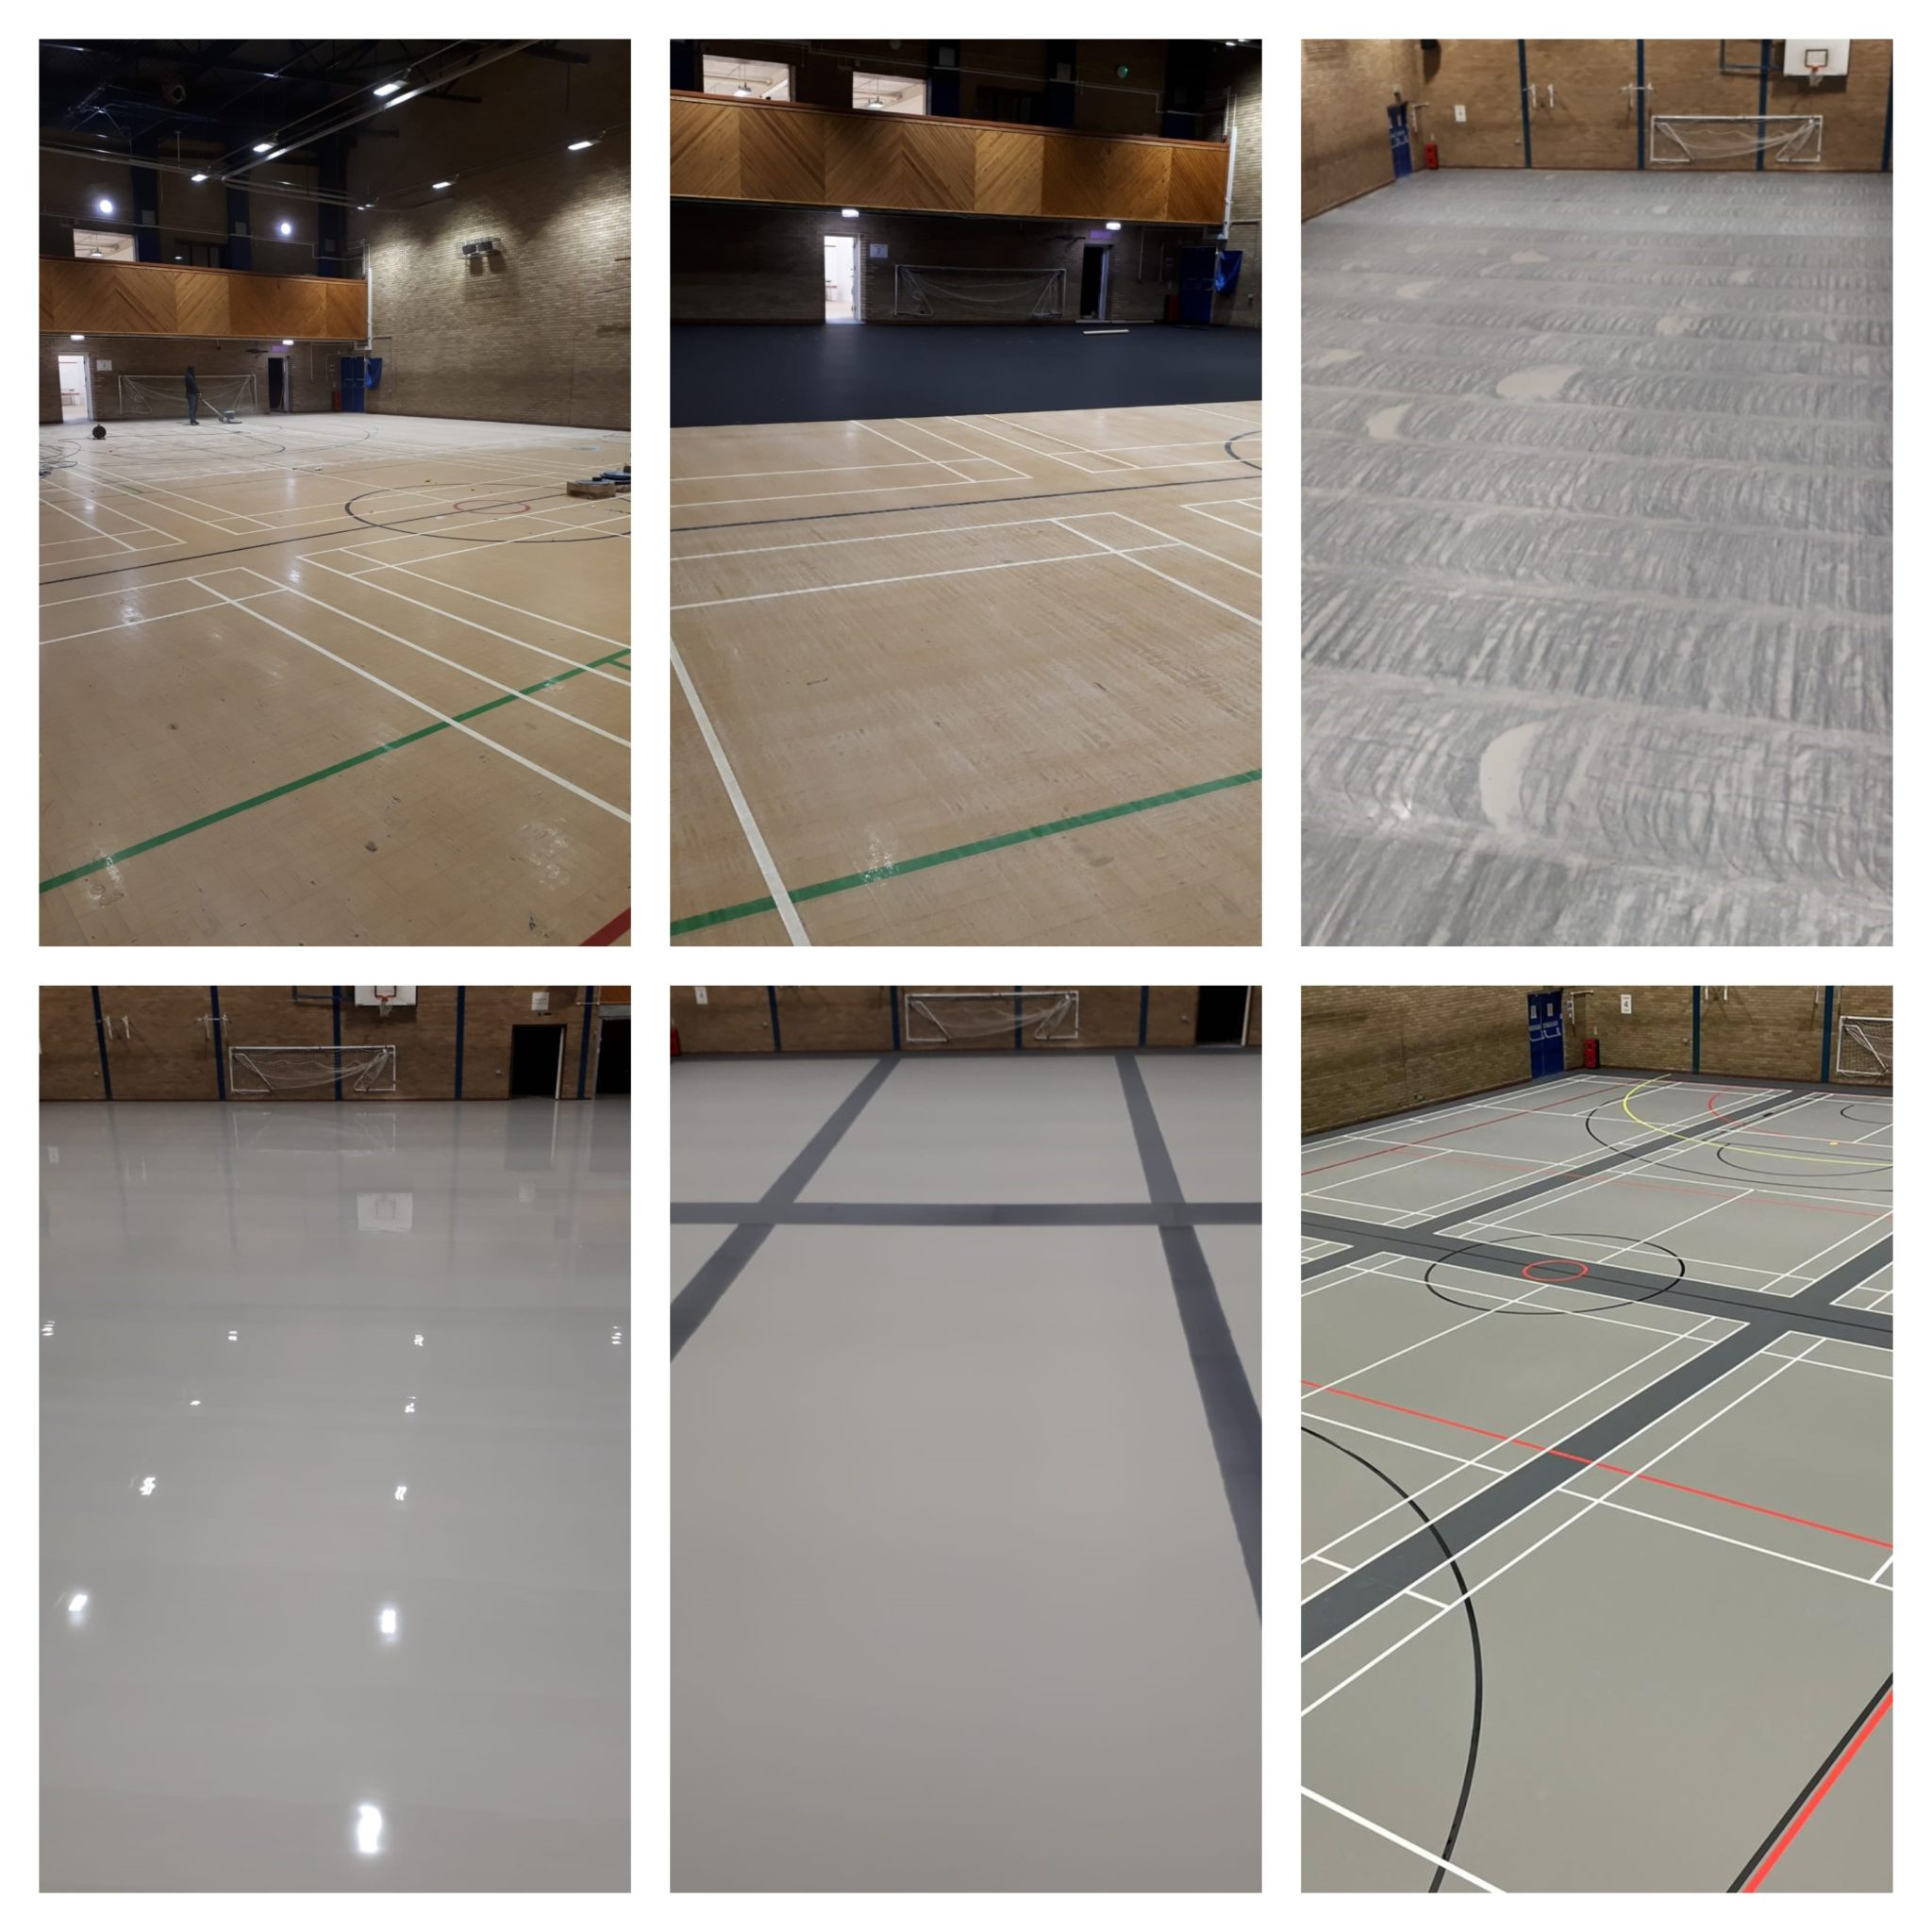 n old Granwood floor transformed into a new dusty and iron grey multifunctional sports floor at Barry Leisure Centre.